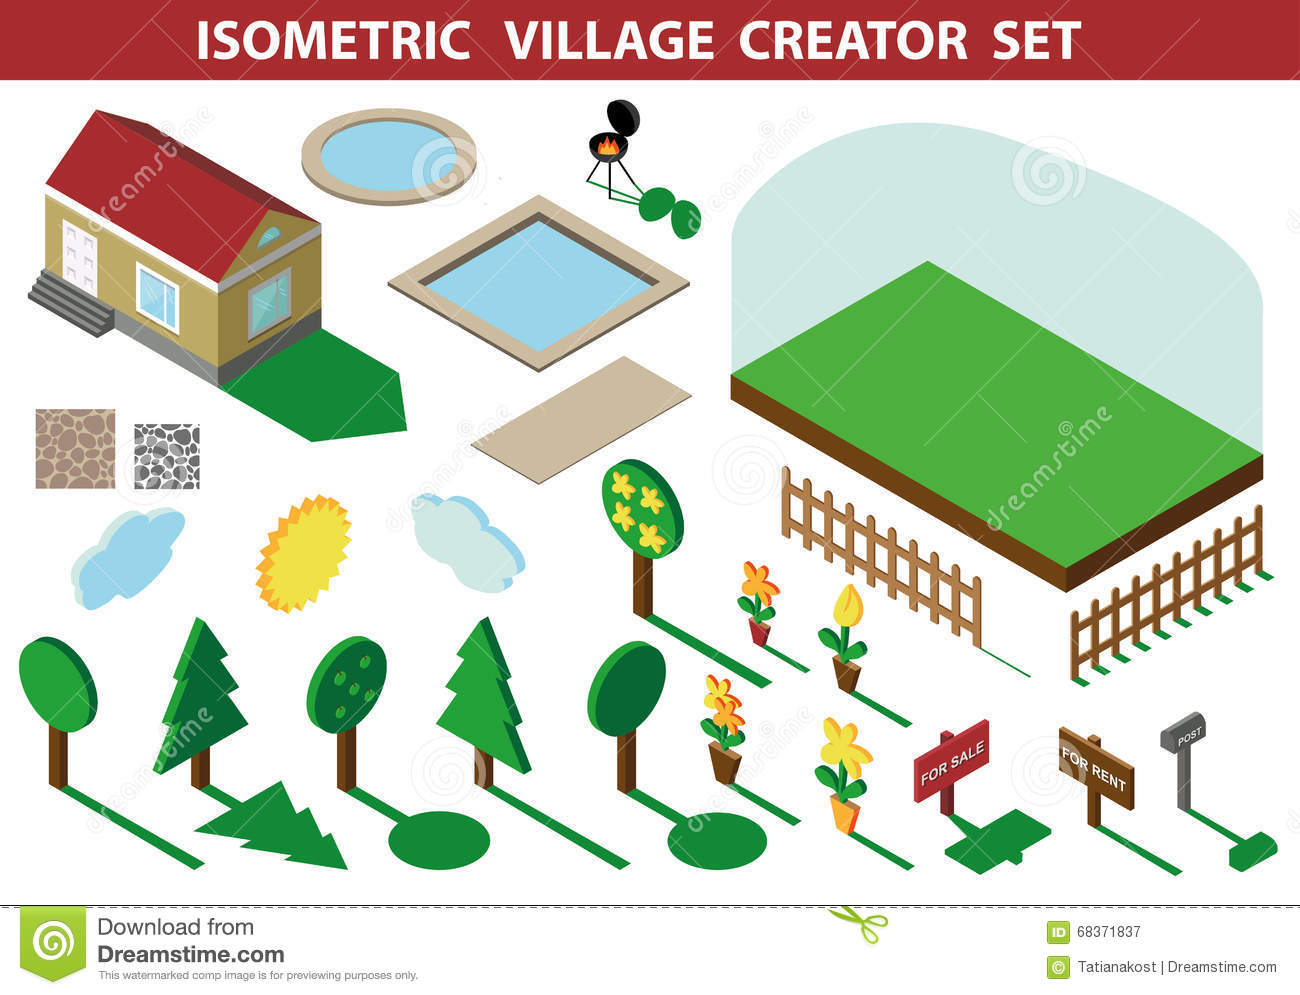 More similar stock images of 3d landscape with fall tree - Isometric House 3d Village Landscape Creator Kit Royalty Free Stock Photography